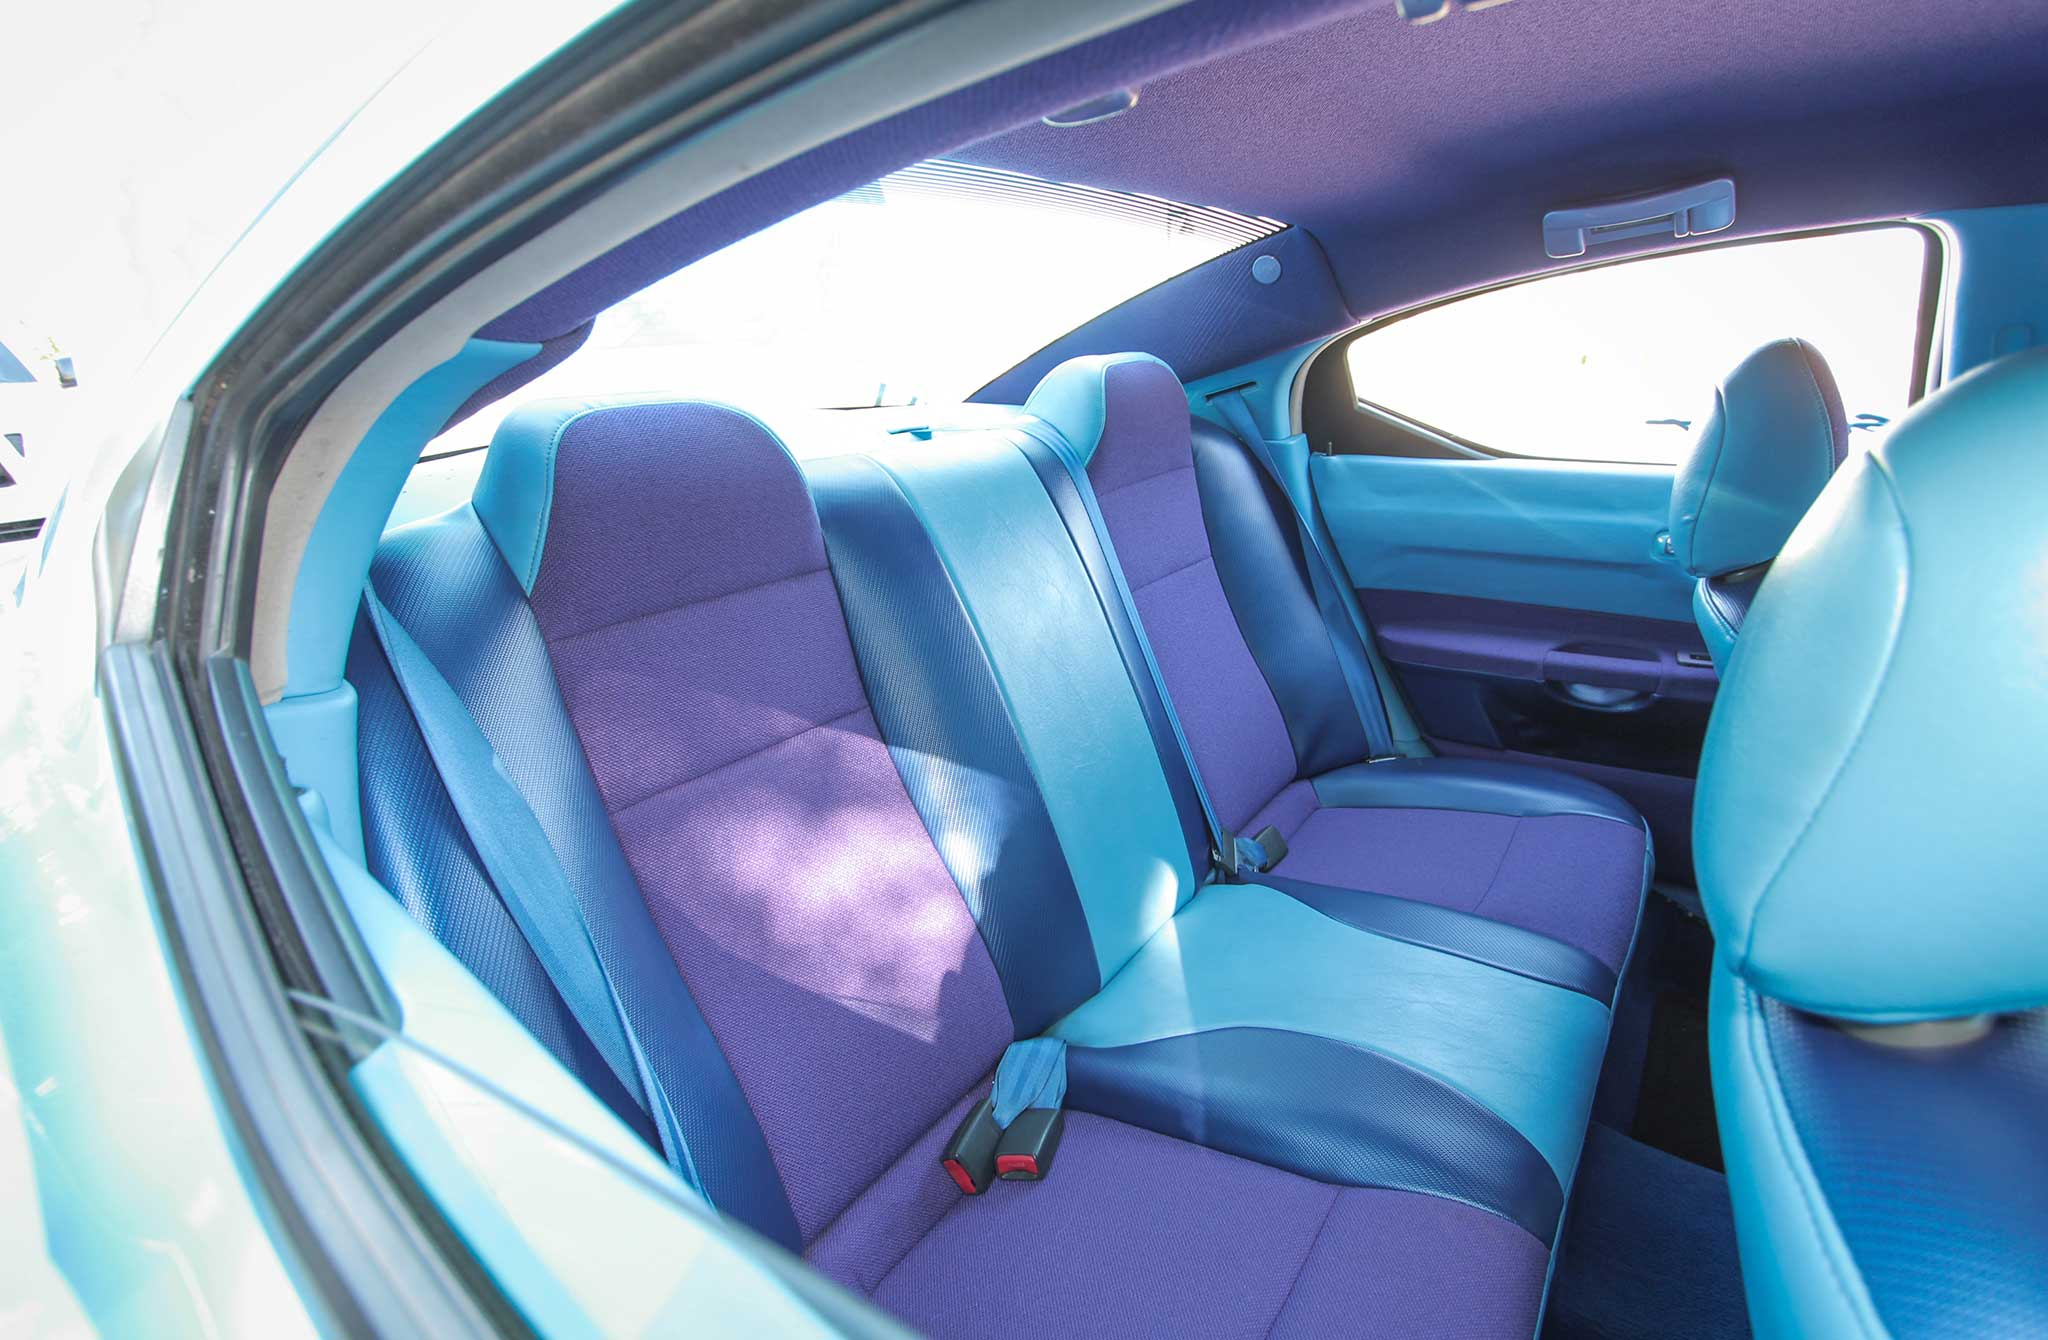 2006 Dodge Charger Back Seats 005 Lowrider